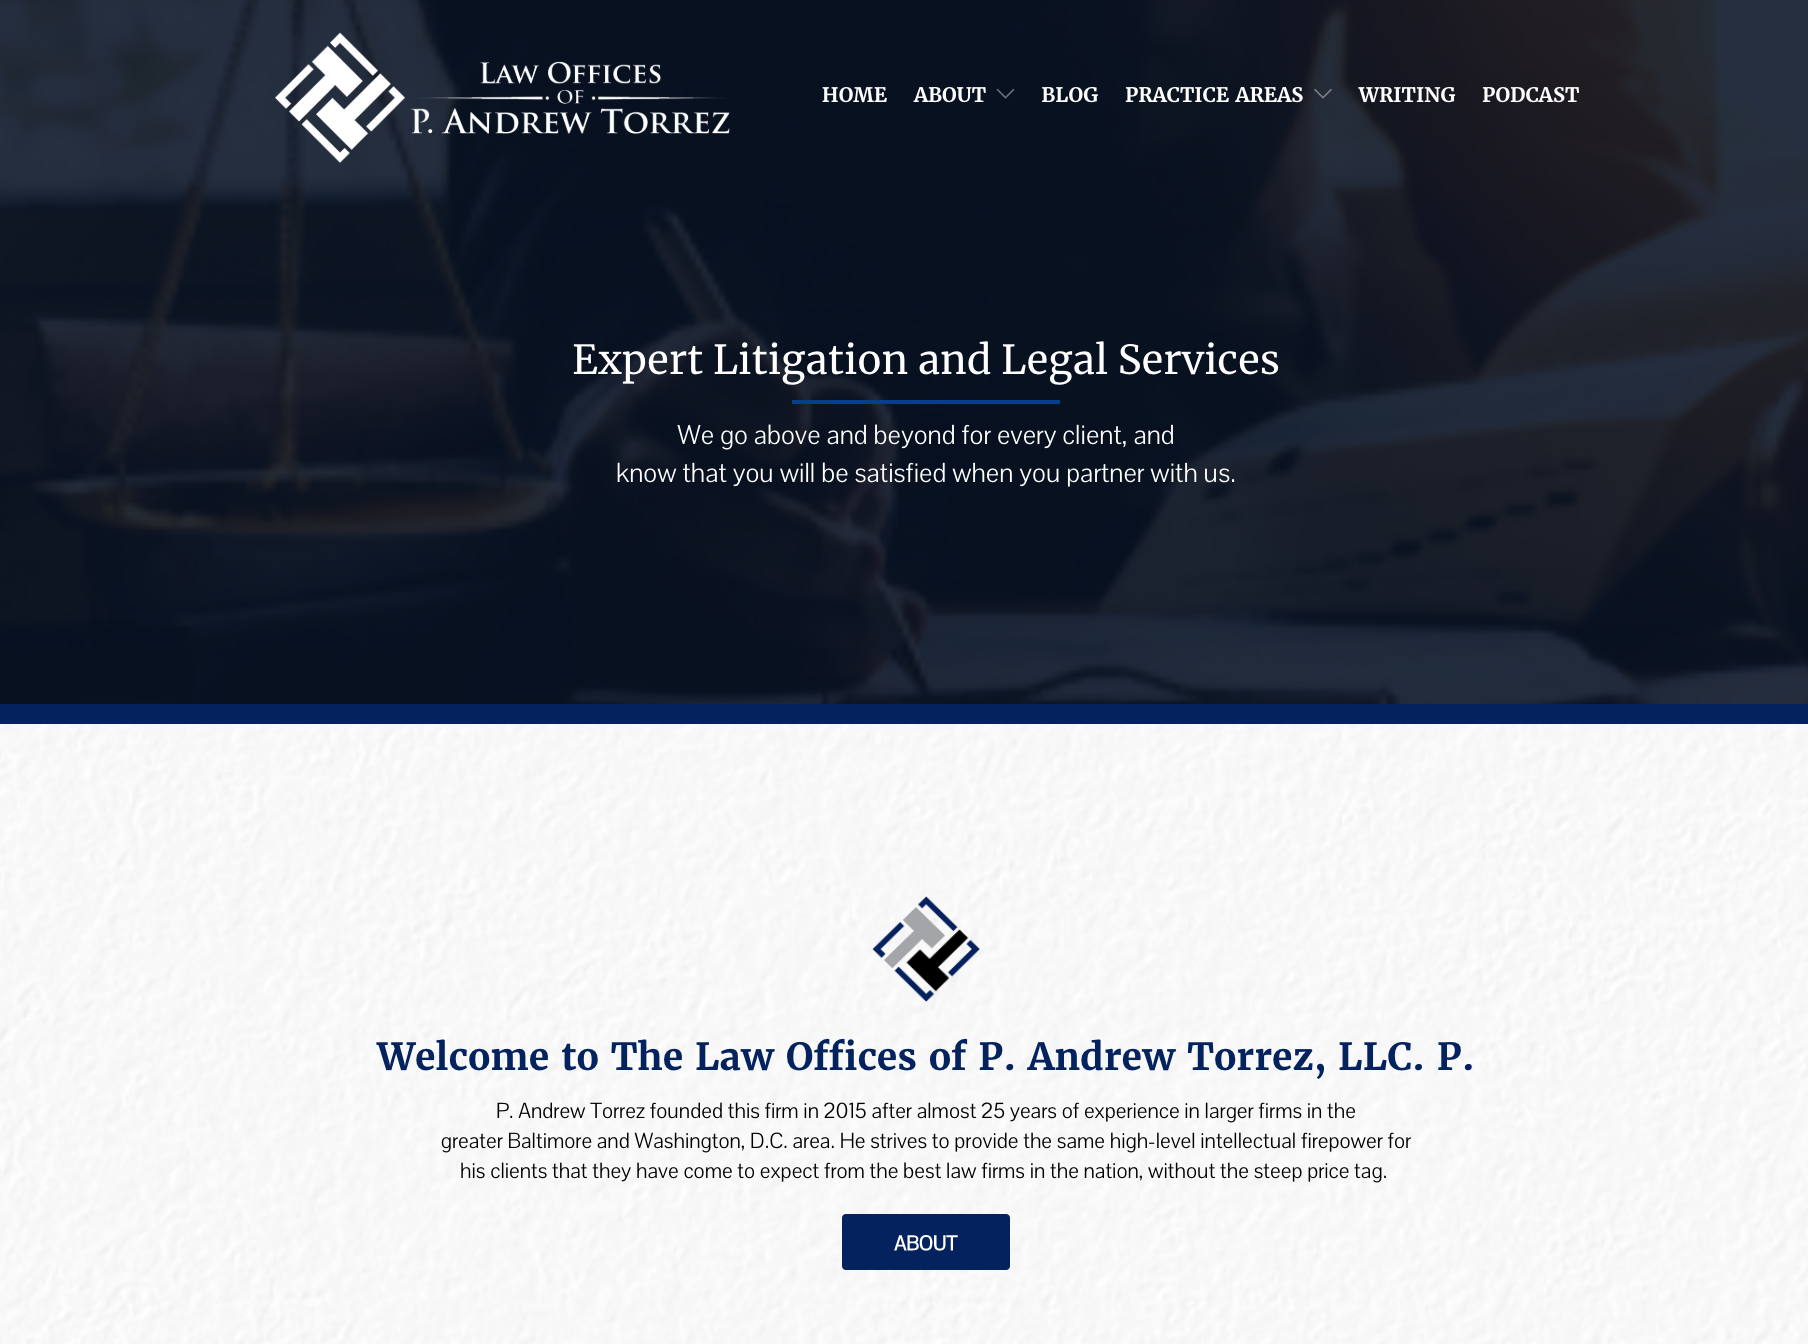 Andrew Torrez Law